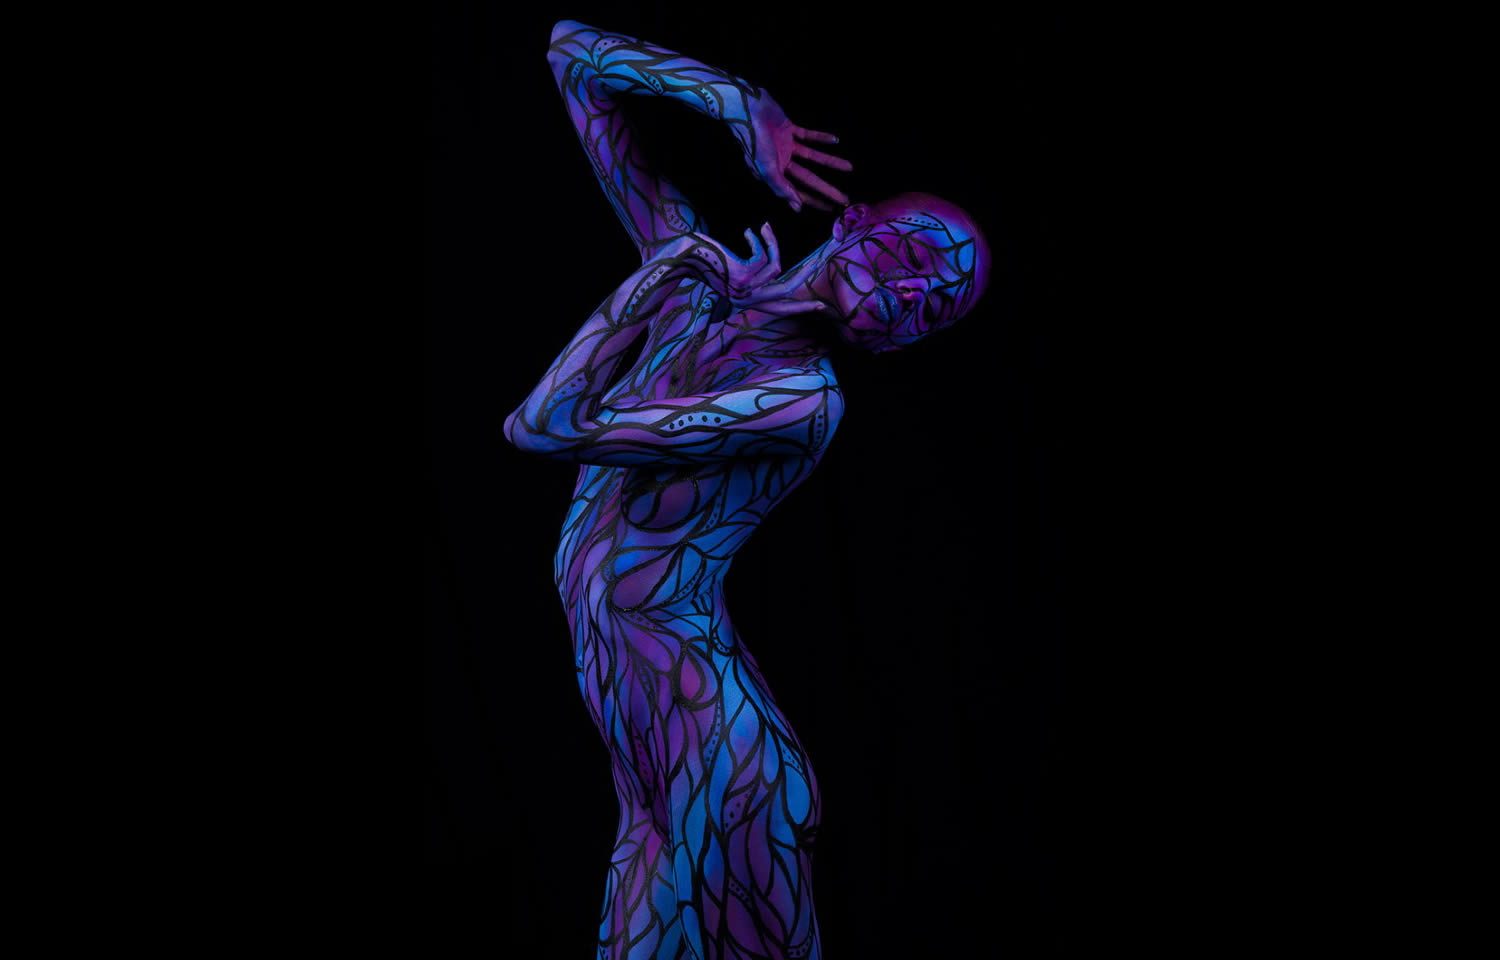 purple and blue body painting on woman by trina merry